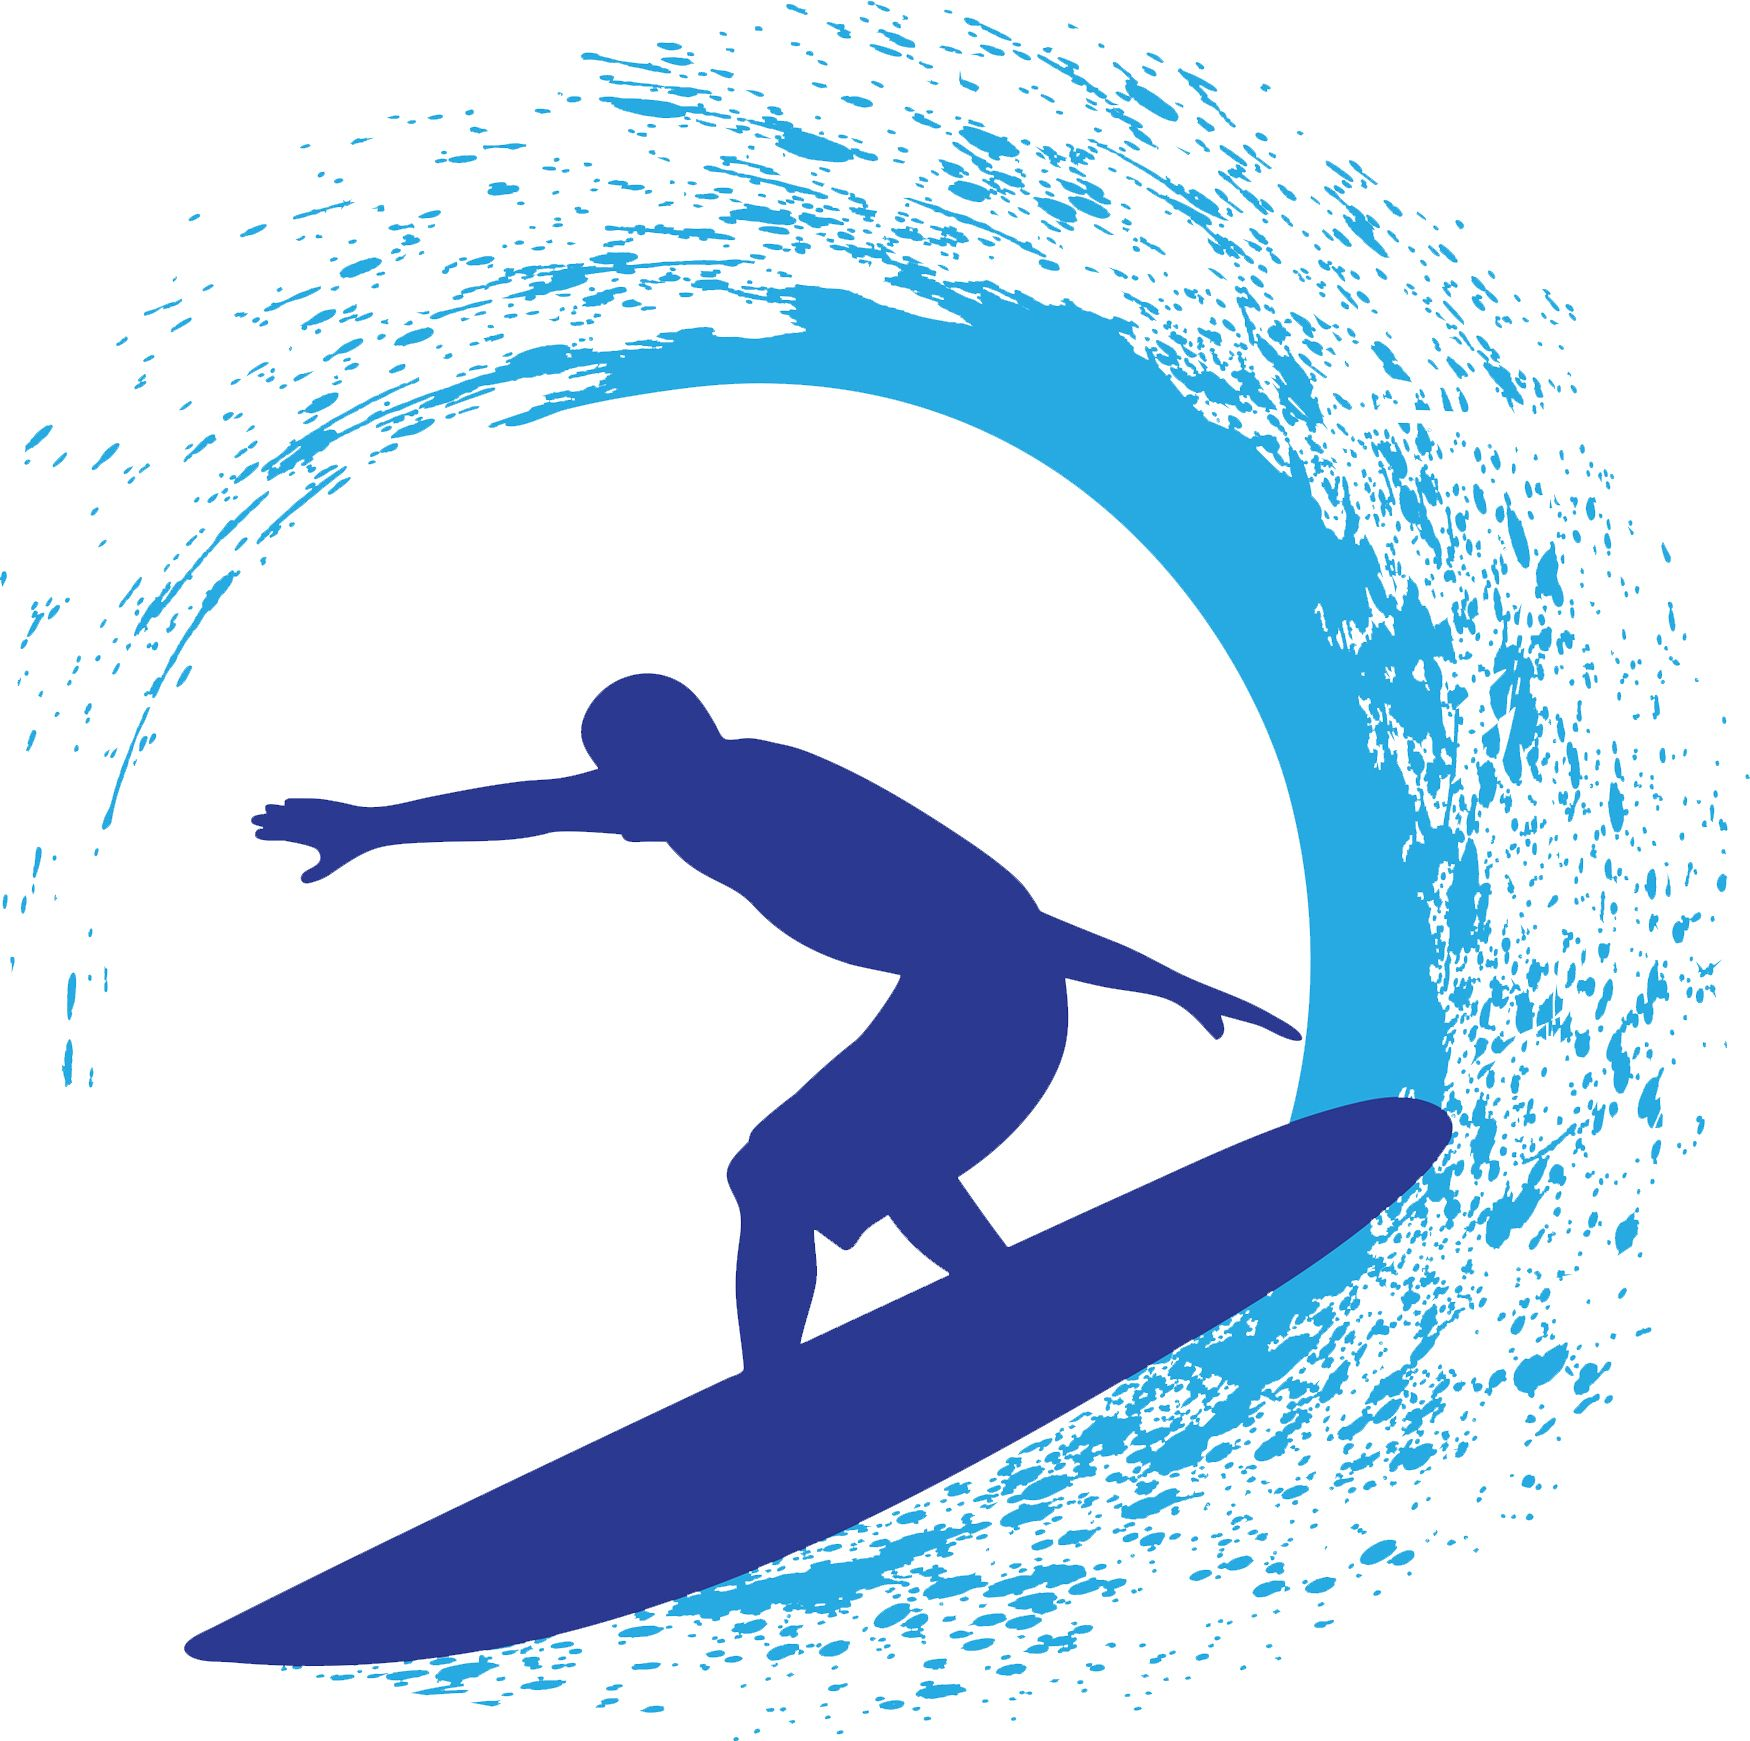 1750x1741 Create Surfer Designs Using The Clip Art From The Decorating